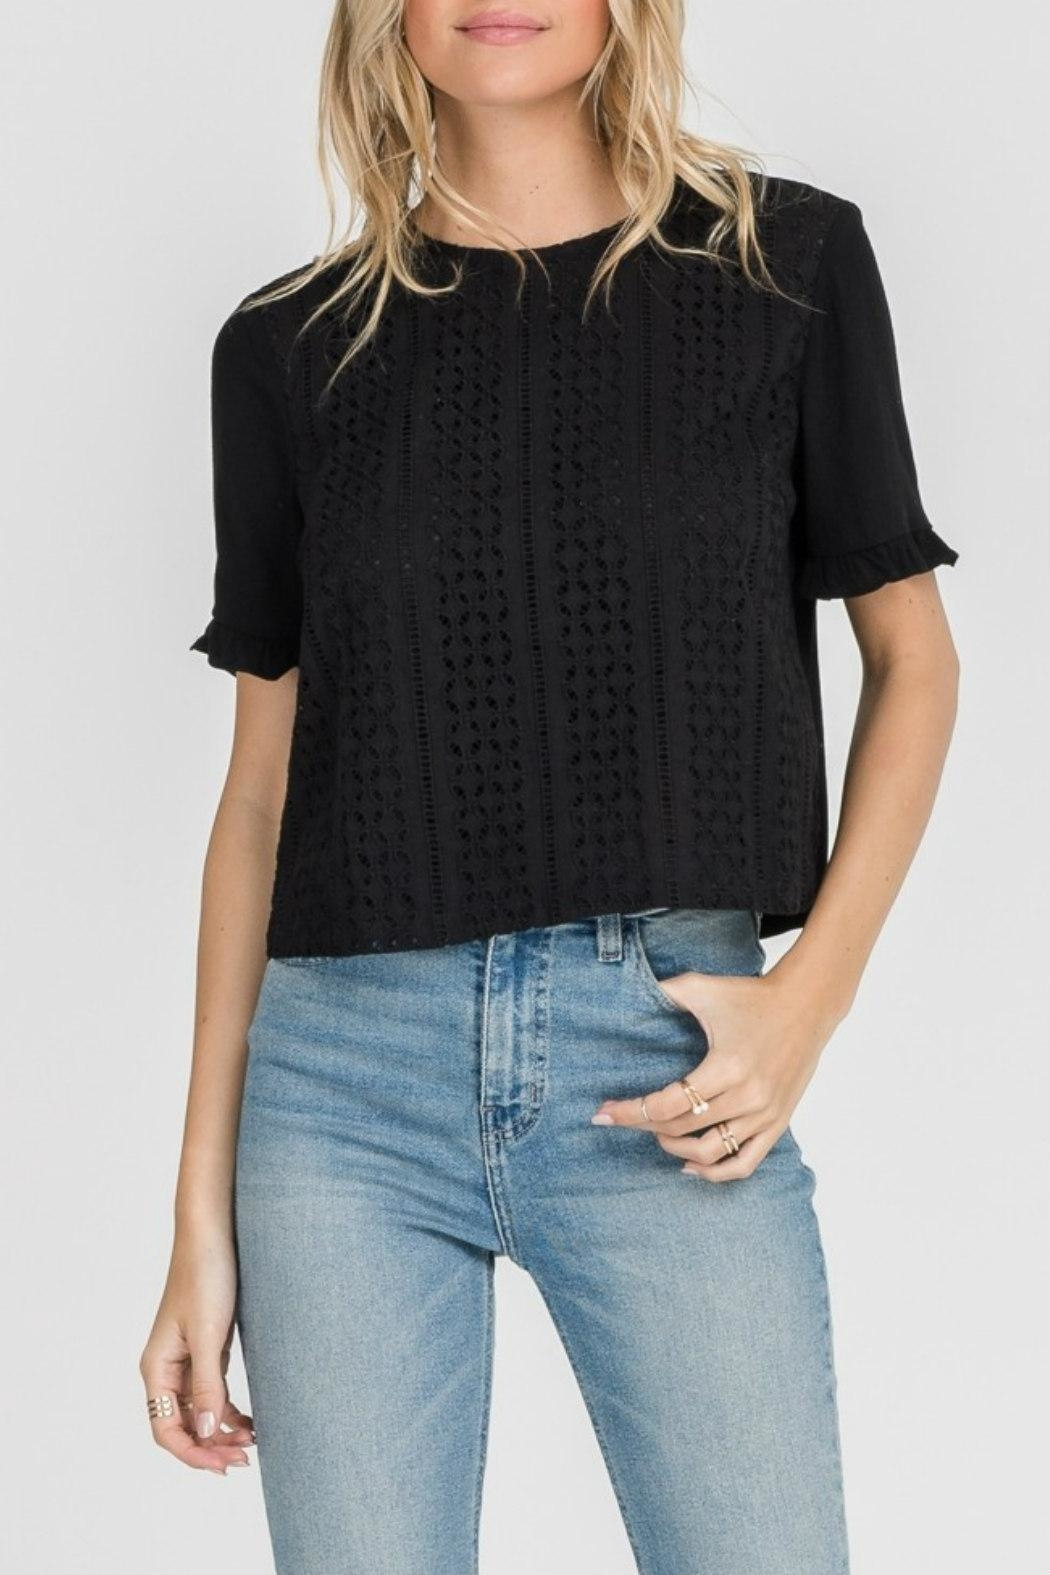 Lush Clothing  Eyelet Ruffle-Sleeve Top - Main Image